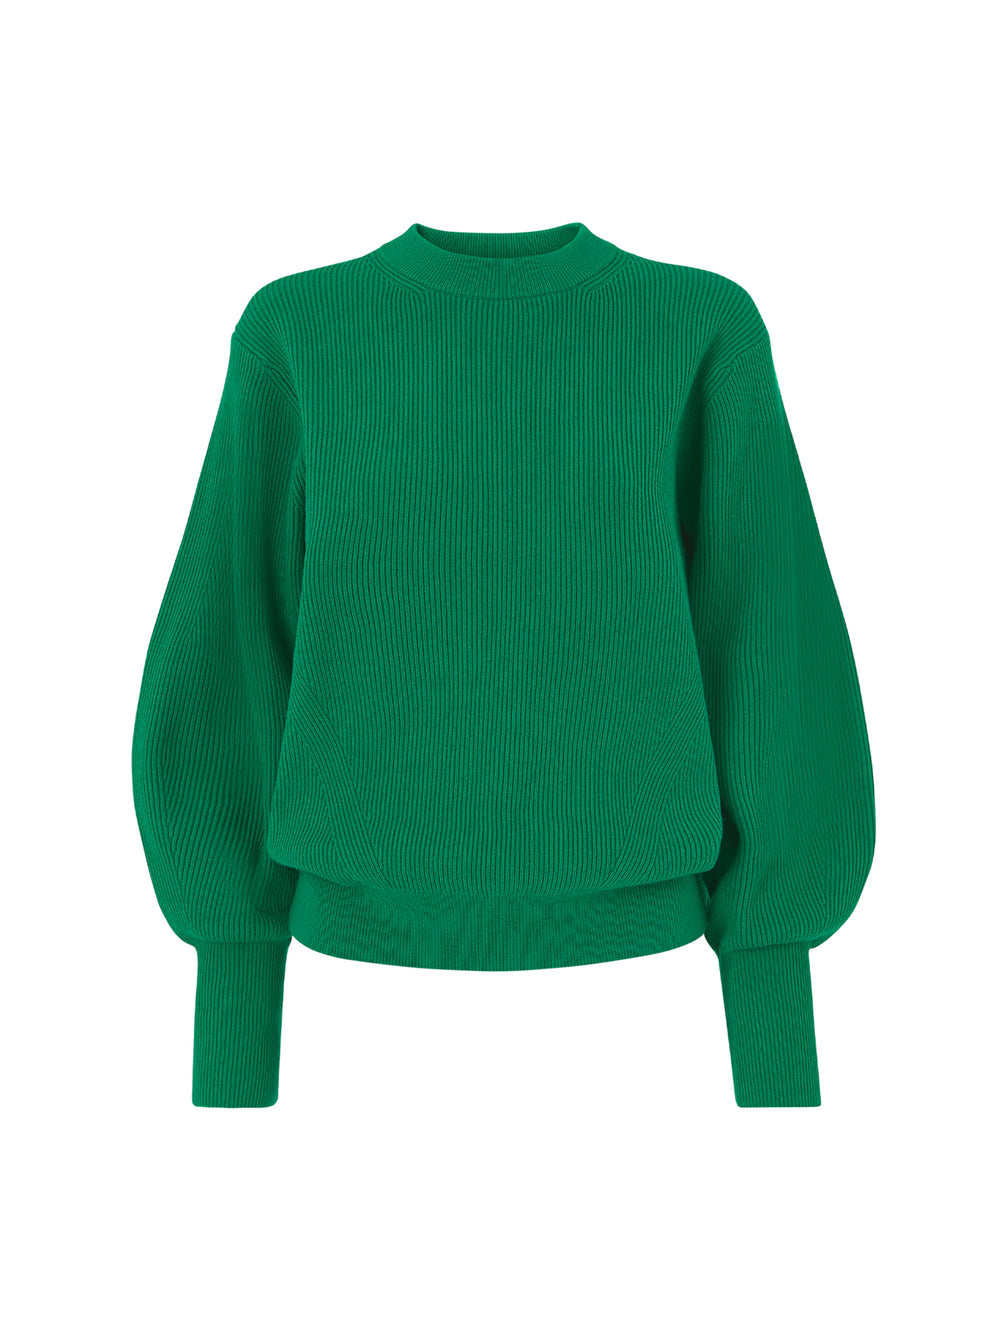 Odell Green Ribbed Knit Jumper by KITRI Studio